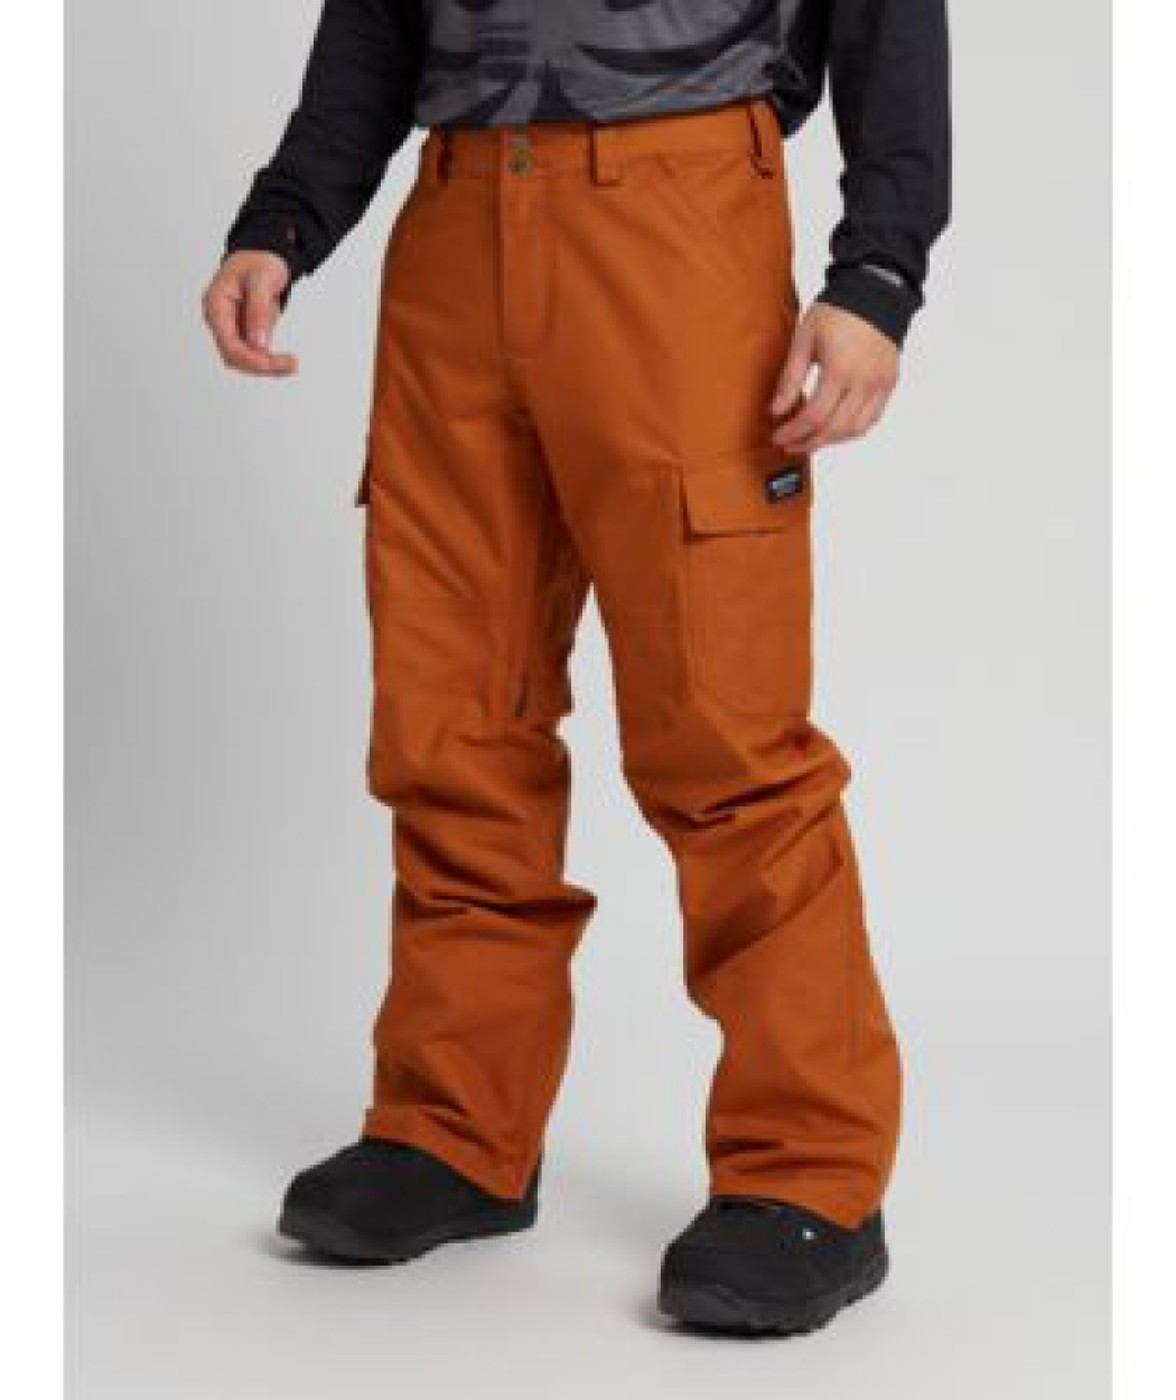 BURTON Cargo Pant Regular Fit - Herren